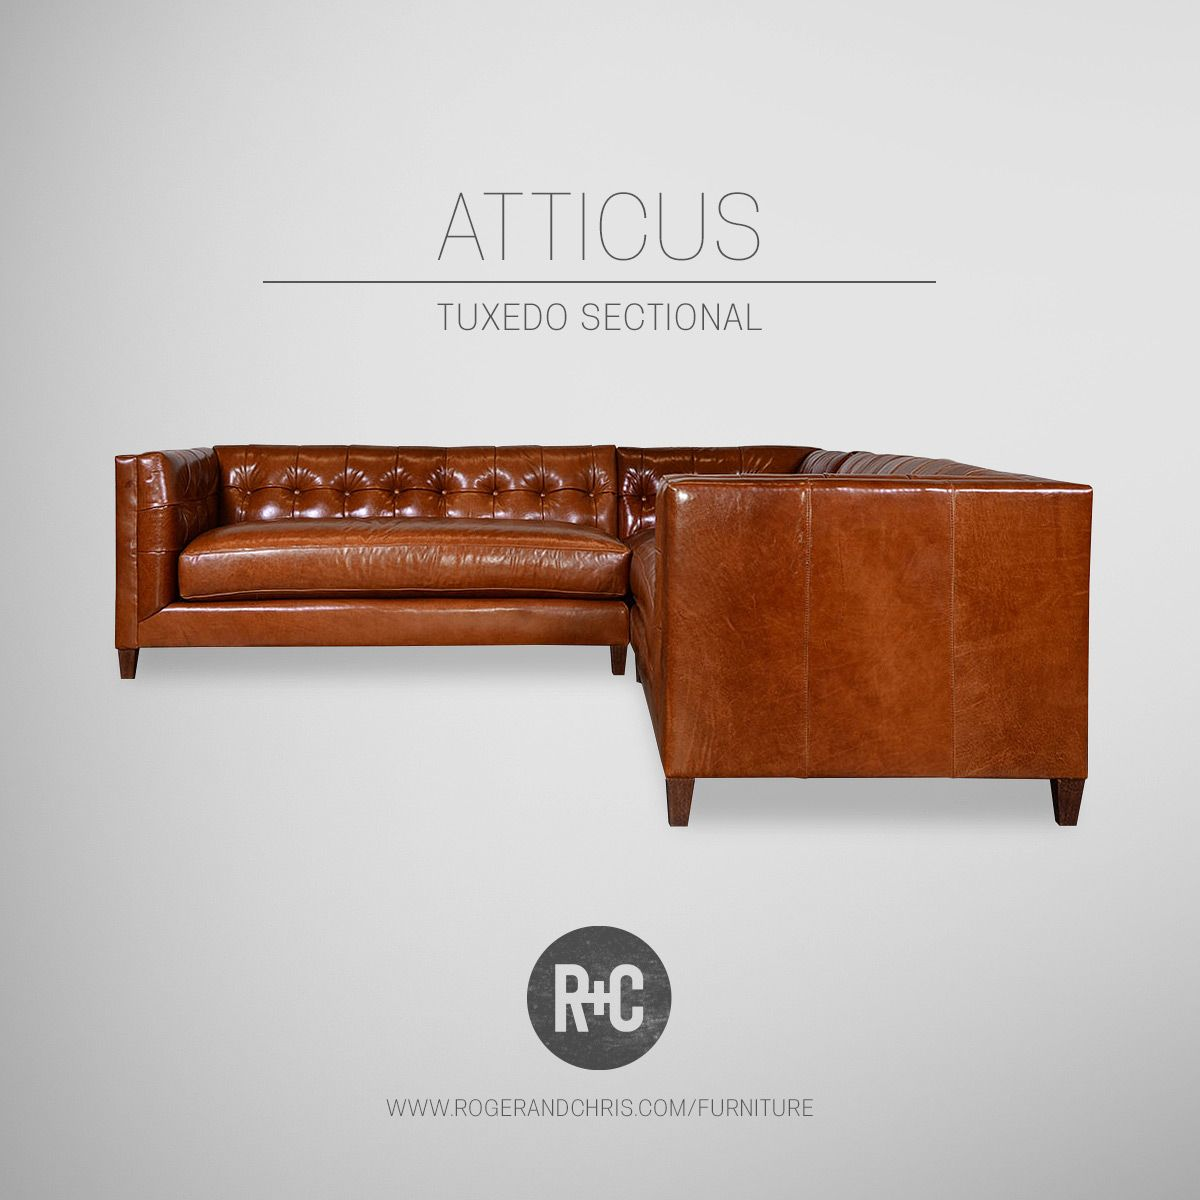 Our Atticus Is A Mid Century Modern Tuxedo Sofa Now Available As A Sectional This Br Mid Century Modern Leather Sofa Home Design Living Room Leather Sectional